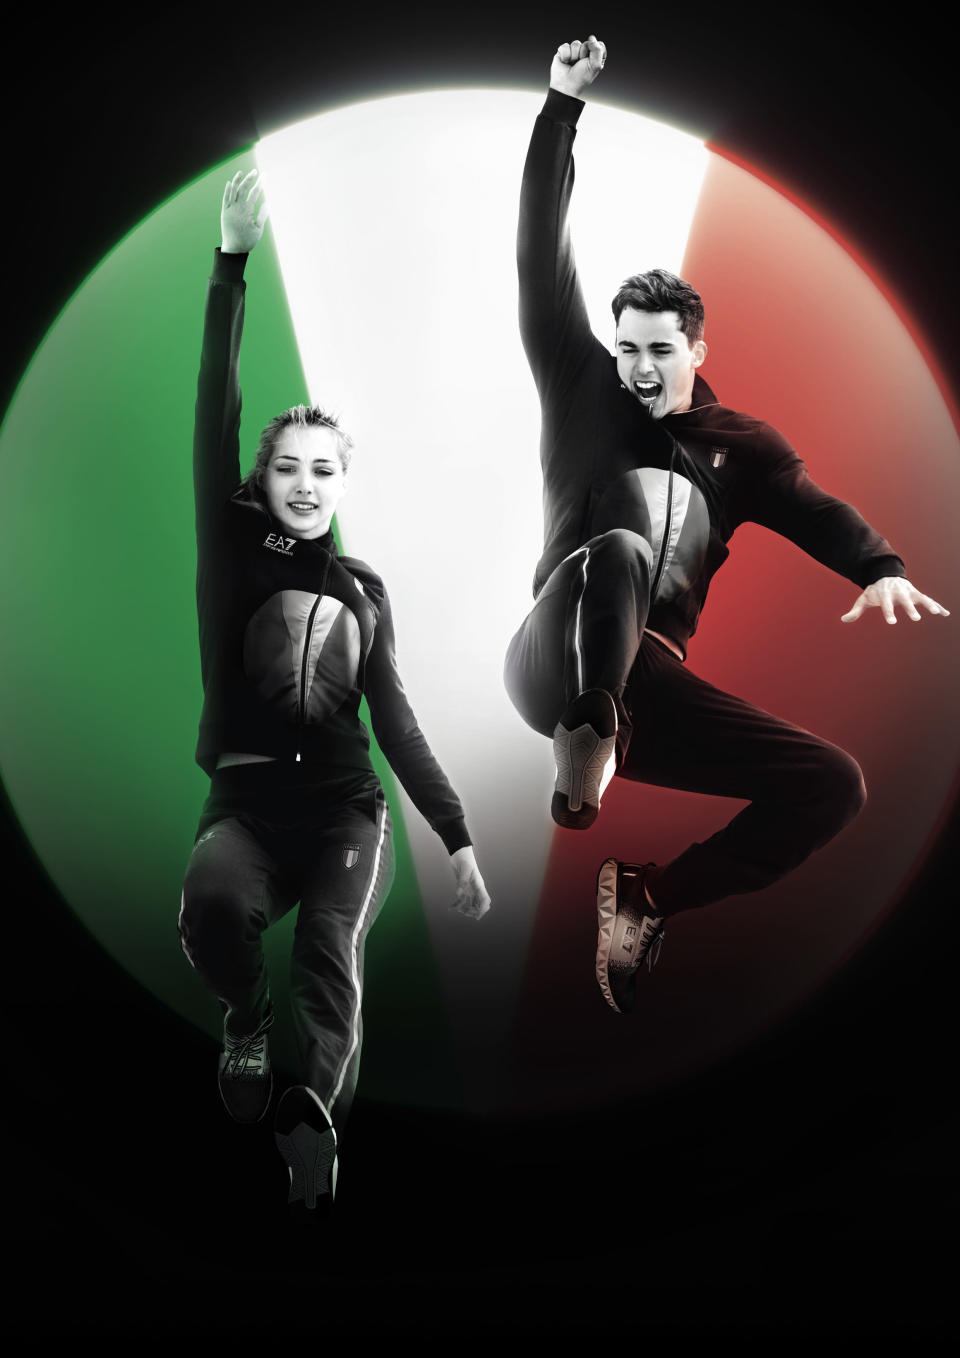 EA7 Emporio Armani outfits for the Italian Olympic team at the Tokyo Olympic Games. - Credit: Courtesy